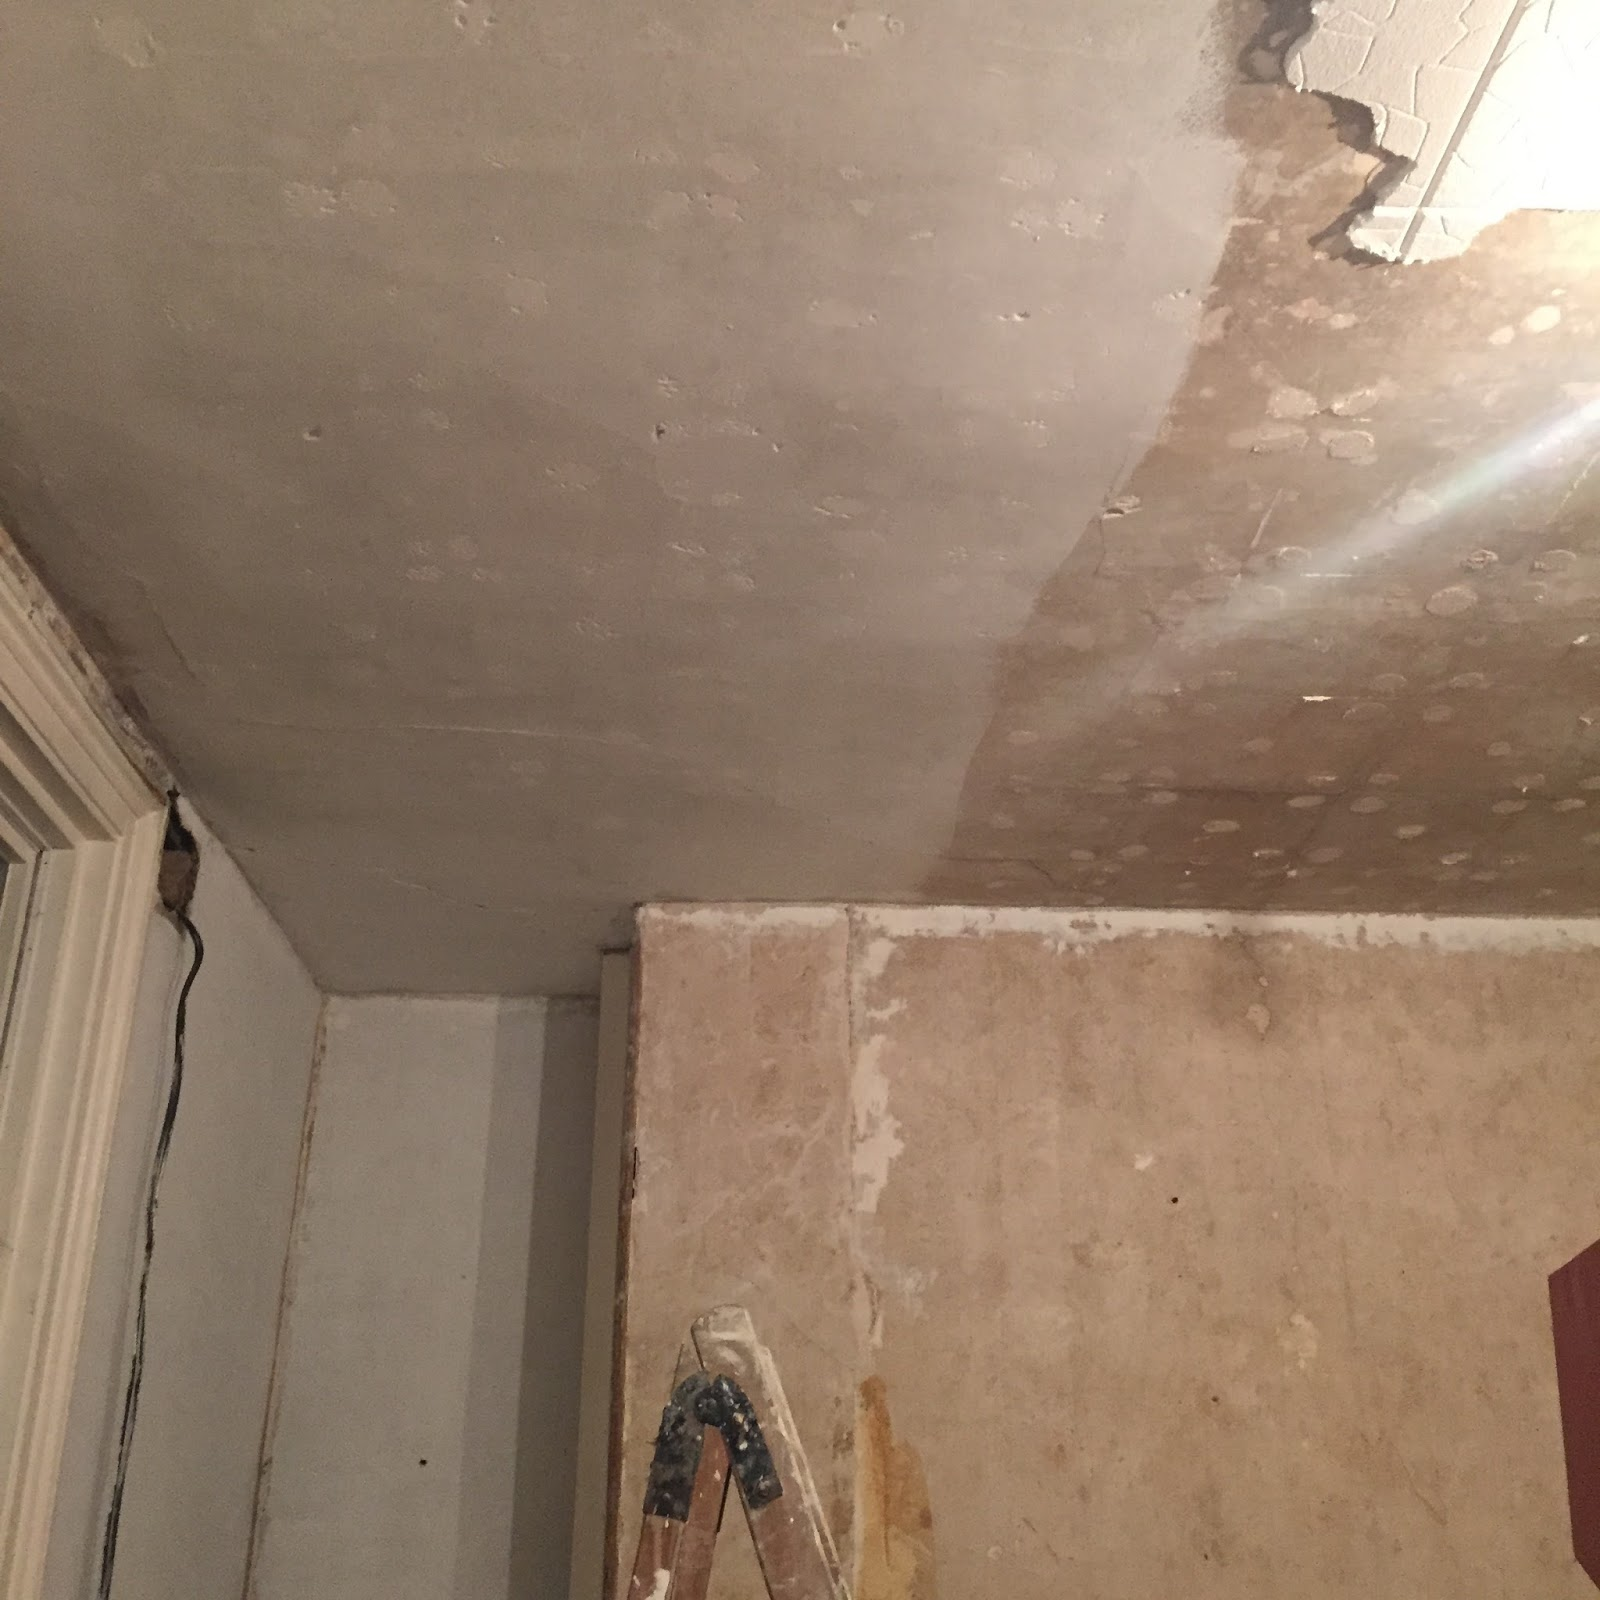 Kezzabeth uk home renovation interiors and diy blog how to repair ceiling after removing tiles dailygadgetfo Gallery